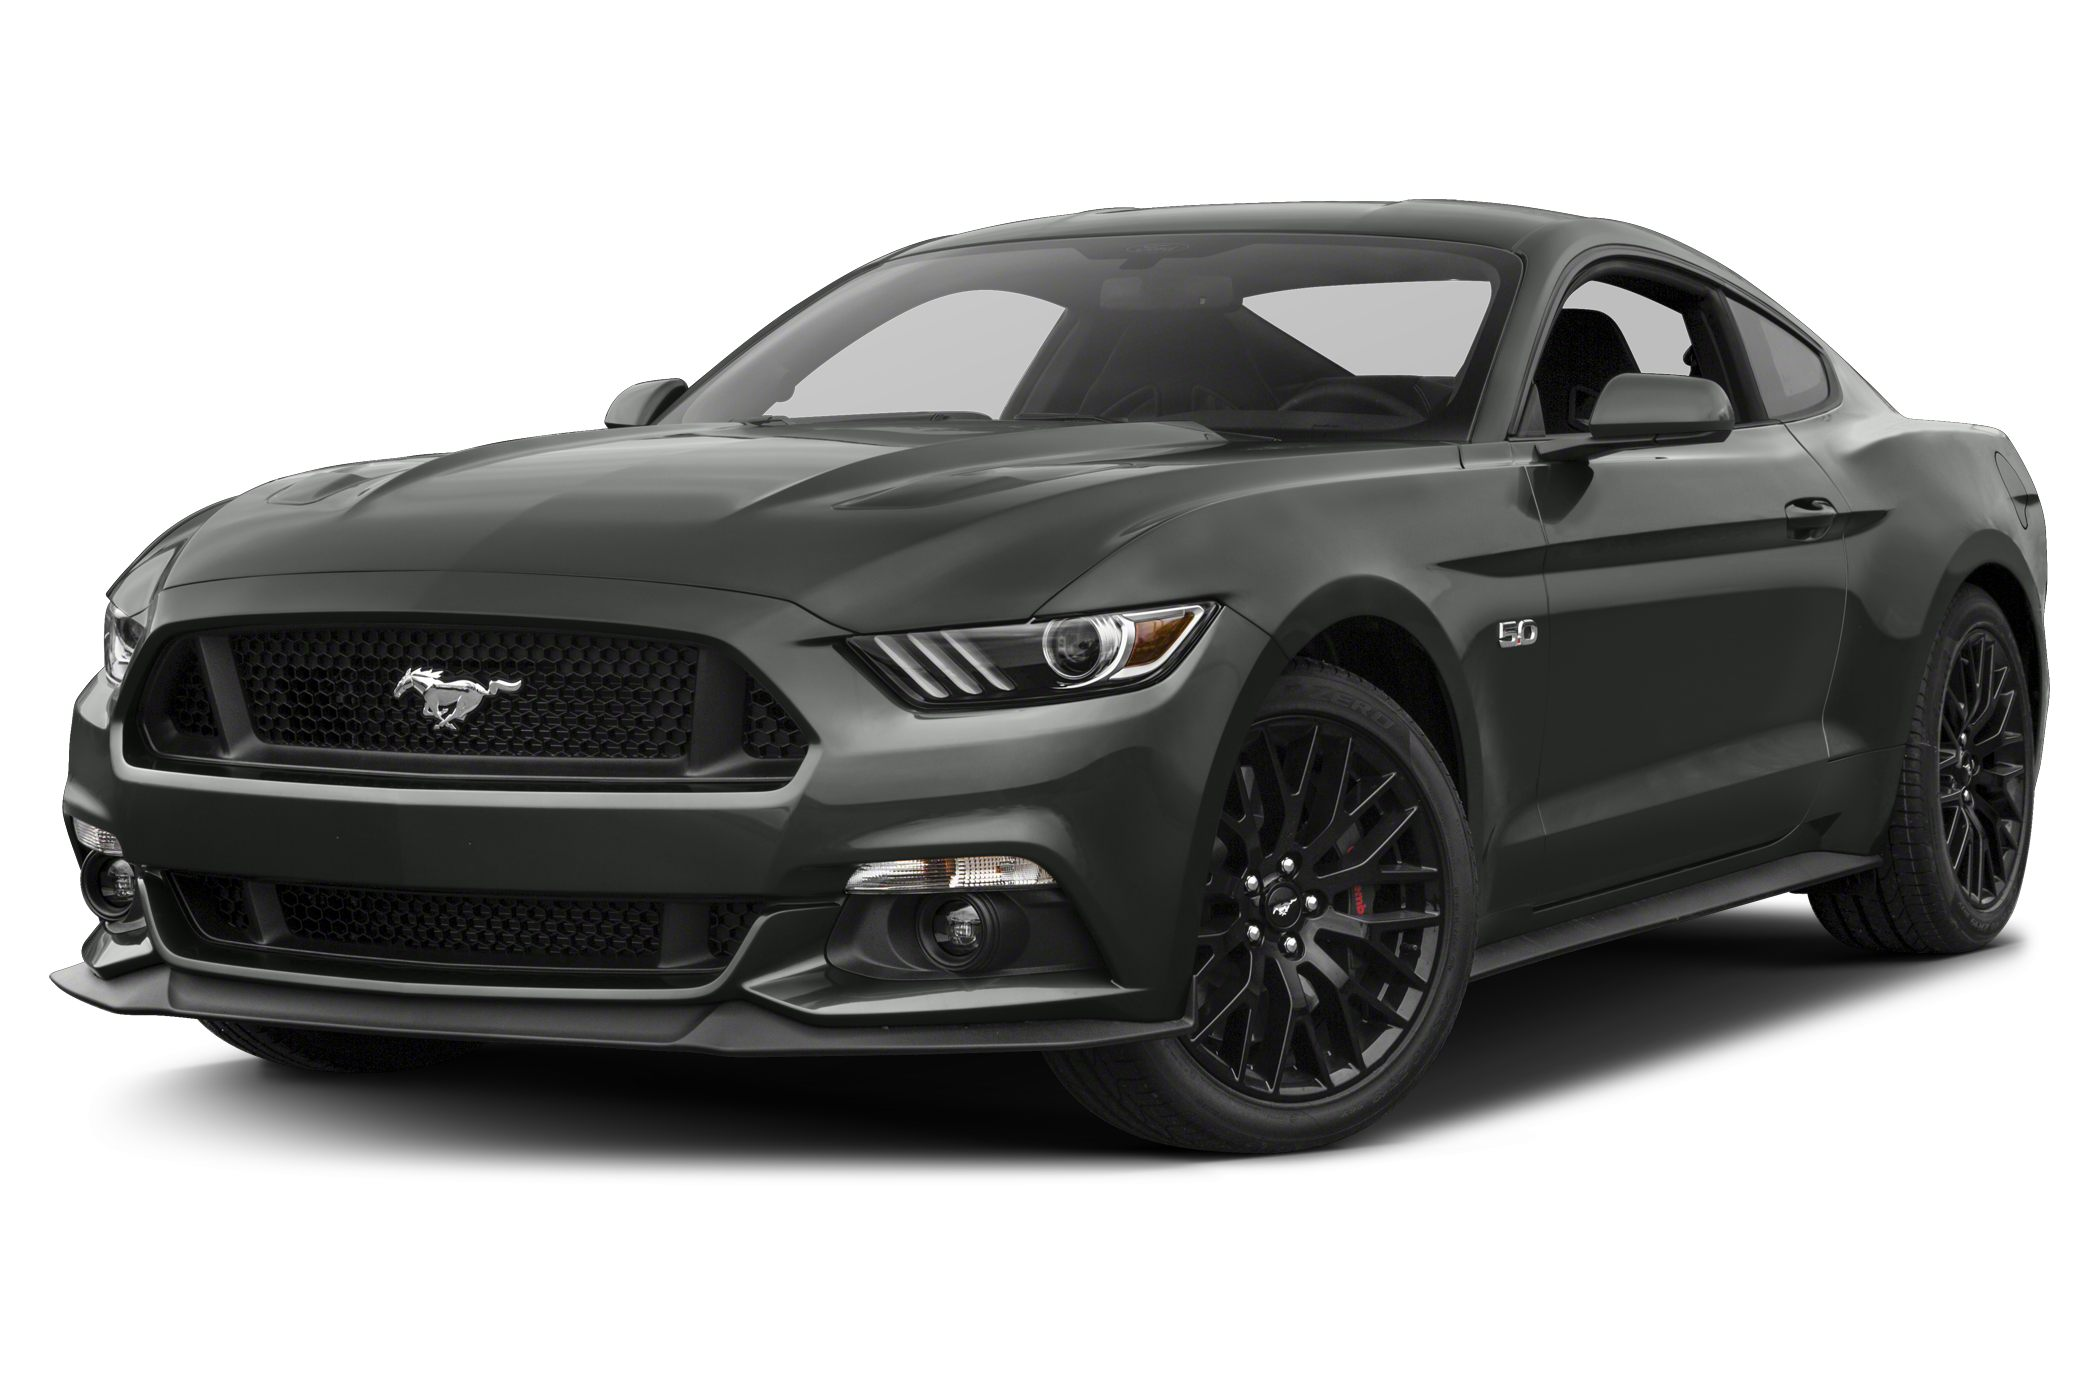 2015 Ford Mustang V6 Coupe for sale in Texas City for $25,140 with 0 miles.